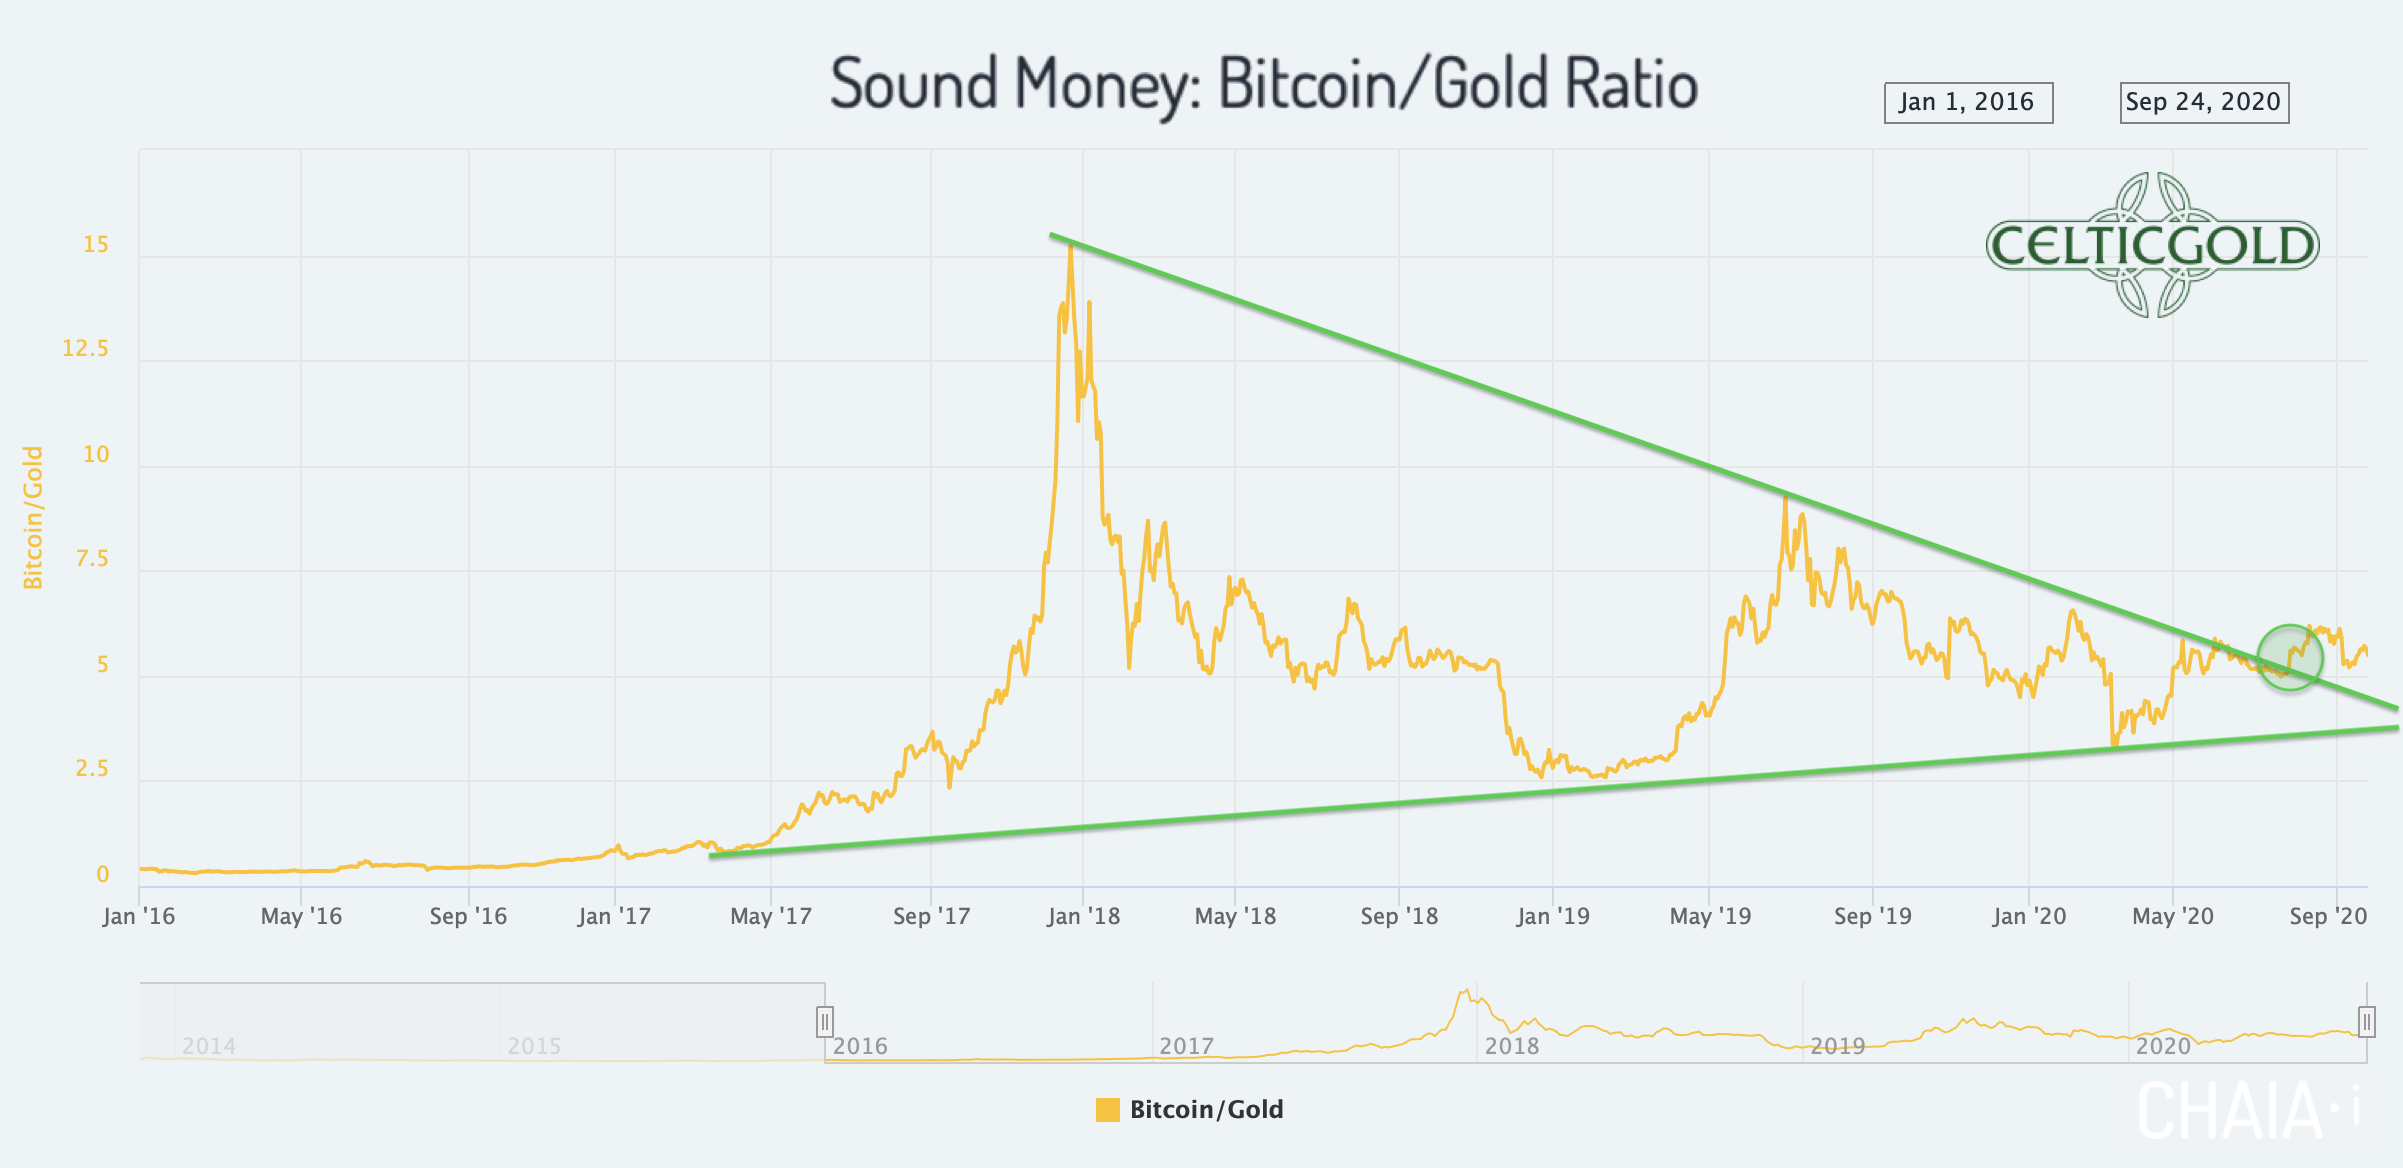 Sound Money Bitcoin/Gold-Ratio as of September 26th, 2020. Source: Chaia. Gold - Short-Term Recovery But The Correction Is Not Over Yet